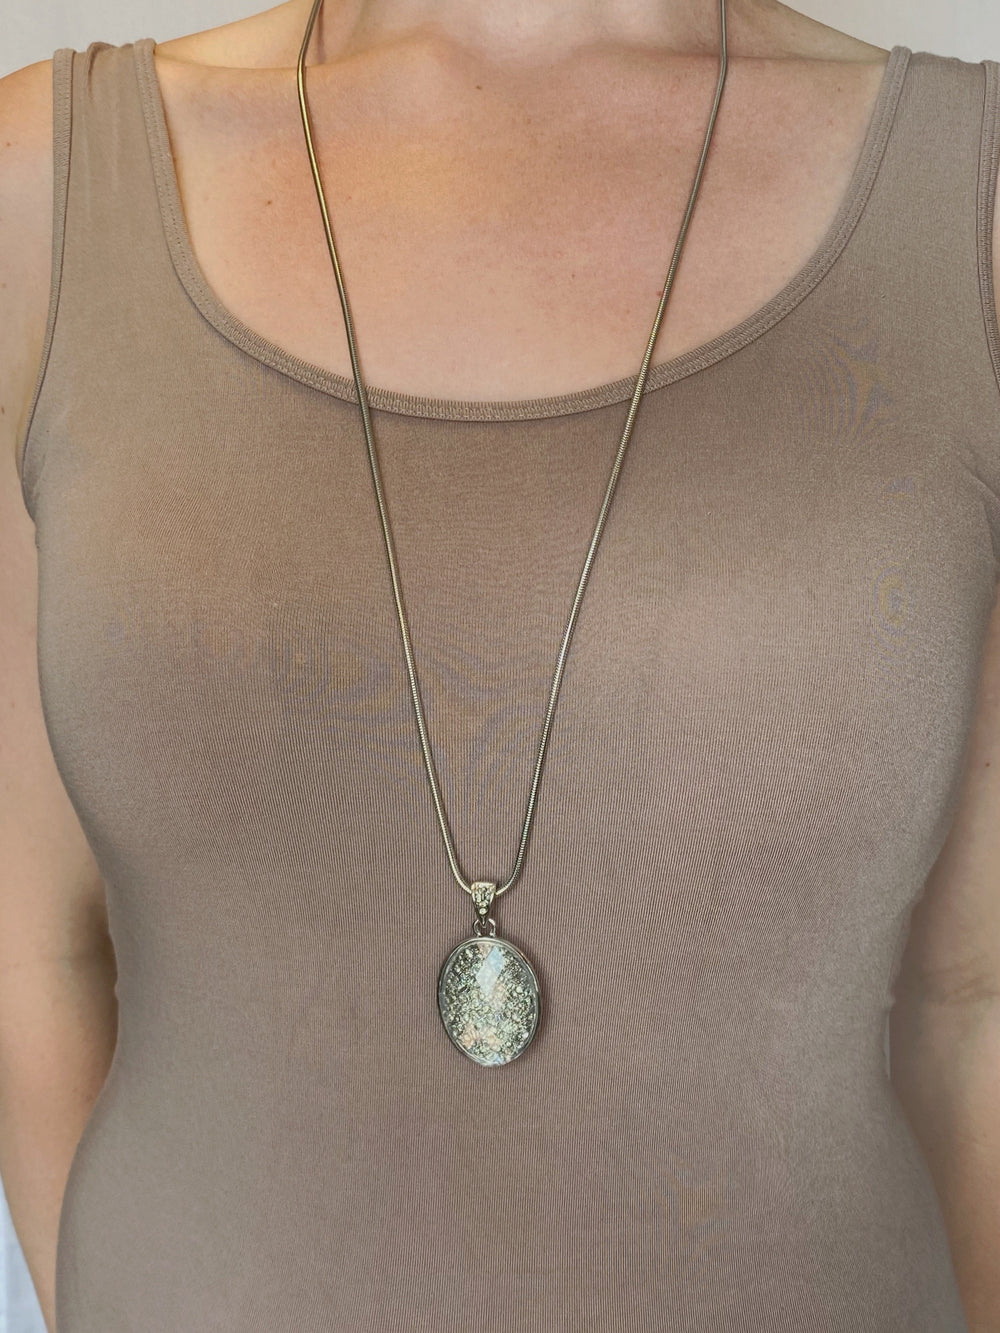 NECKLACE - Crystal Ball